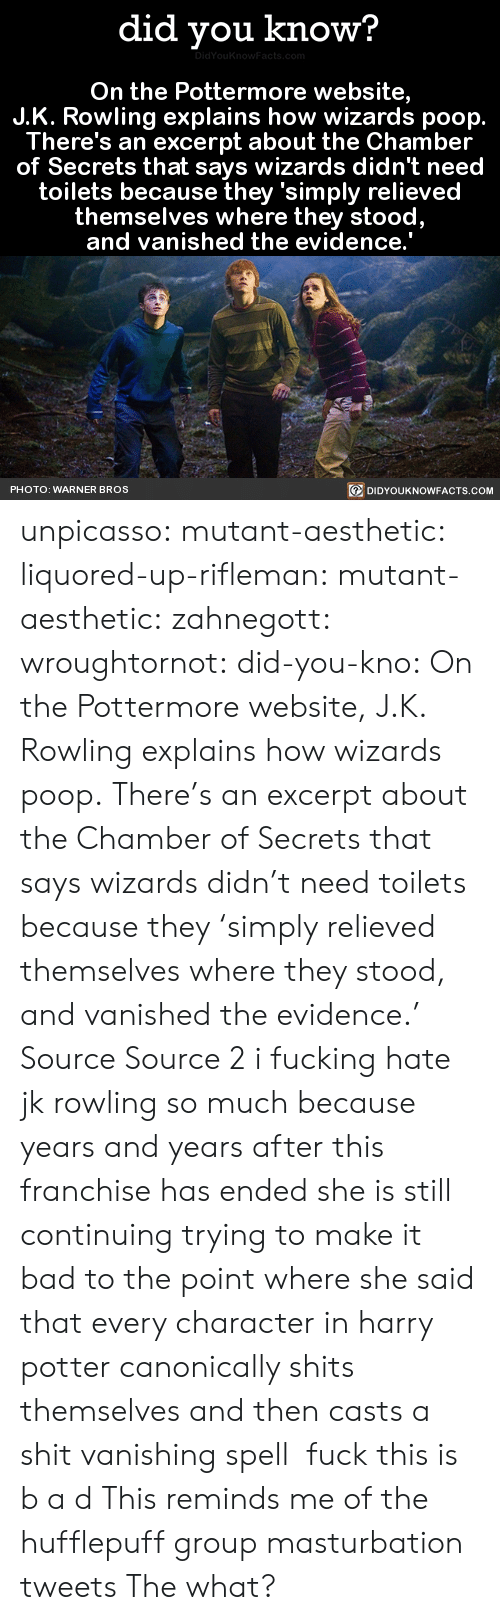 hufflepuff: did you know?  On the Pottermore website,  J.K. Rowling explains how wizards poop.  There's an excerpt about the Chamber  of Secrets that says wizards didn't need  toilets because they 'simply relieved  themselves where they stood  and vanished the evidence.  PHOTO: WARNER BROS  DIDYOUKNOWFACTS.COM unpicasso:  mutant-aesthetic:  liquored-up-rifleman:  mutant-aesthetic:   zahnegott:  wroughtornot:  did-you-kno: On the Pottermore website, J.K. Rowling explains how wizards poop. There's an excerpt about the Chamber of Secrets that says wizards didn't need toilets because they 'simply relieved themselves where they stood, and vanished the evidence.'  Source Source 2 i fucking hate jk rowling so much because years and years after this franchise has ended she is still continuing trying to make it bad to the point where she said that every character in harry potter canonically shits themselves and then casts a shit vanishing spell  fuck this is b a d   This reminds me of the hufflepuff group masturbation tweets   The what?